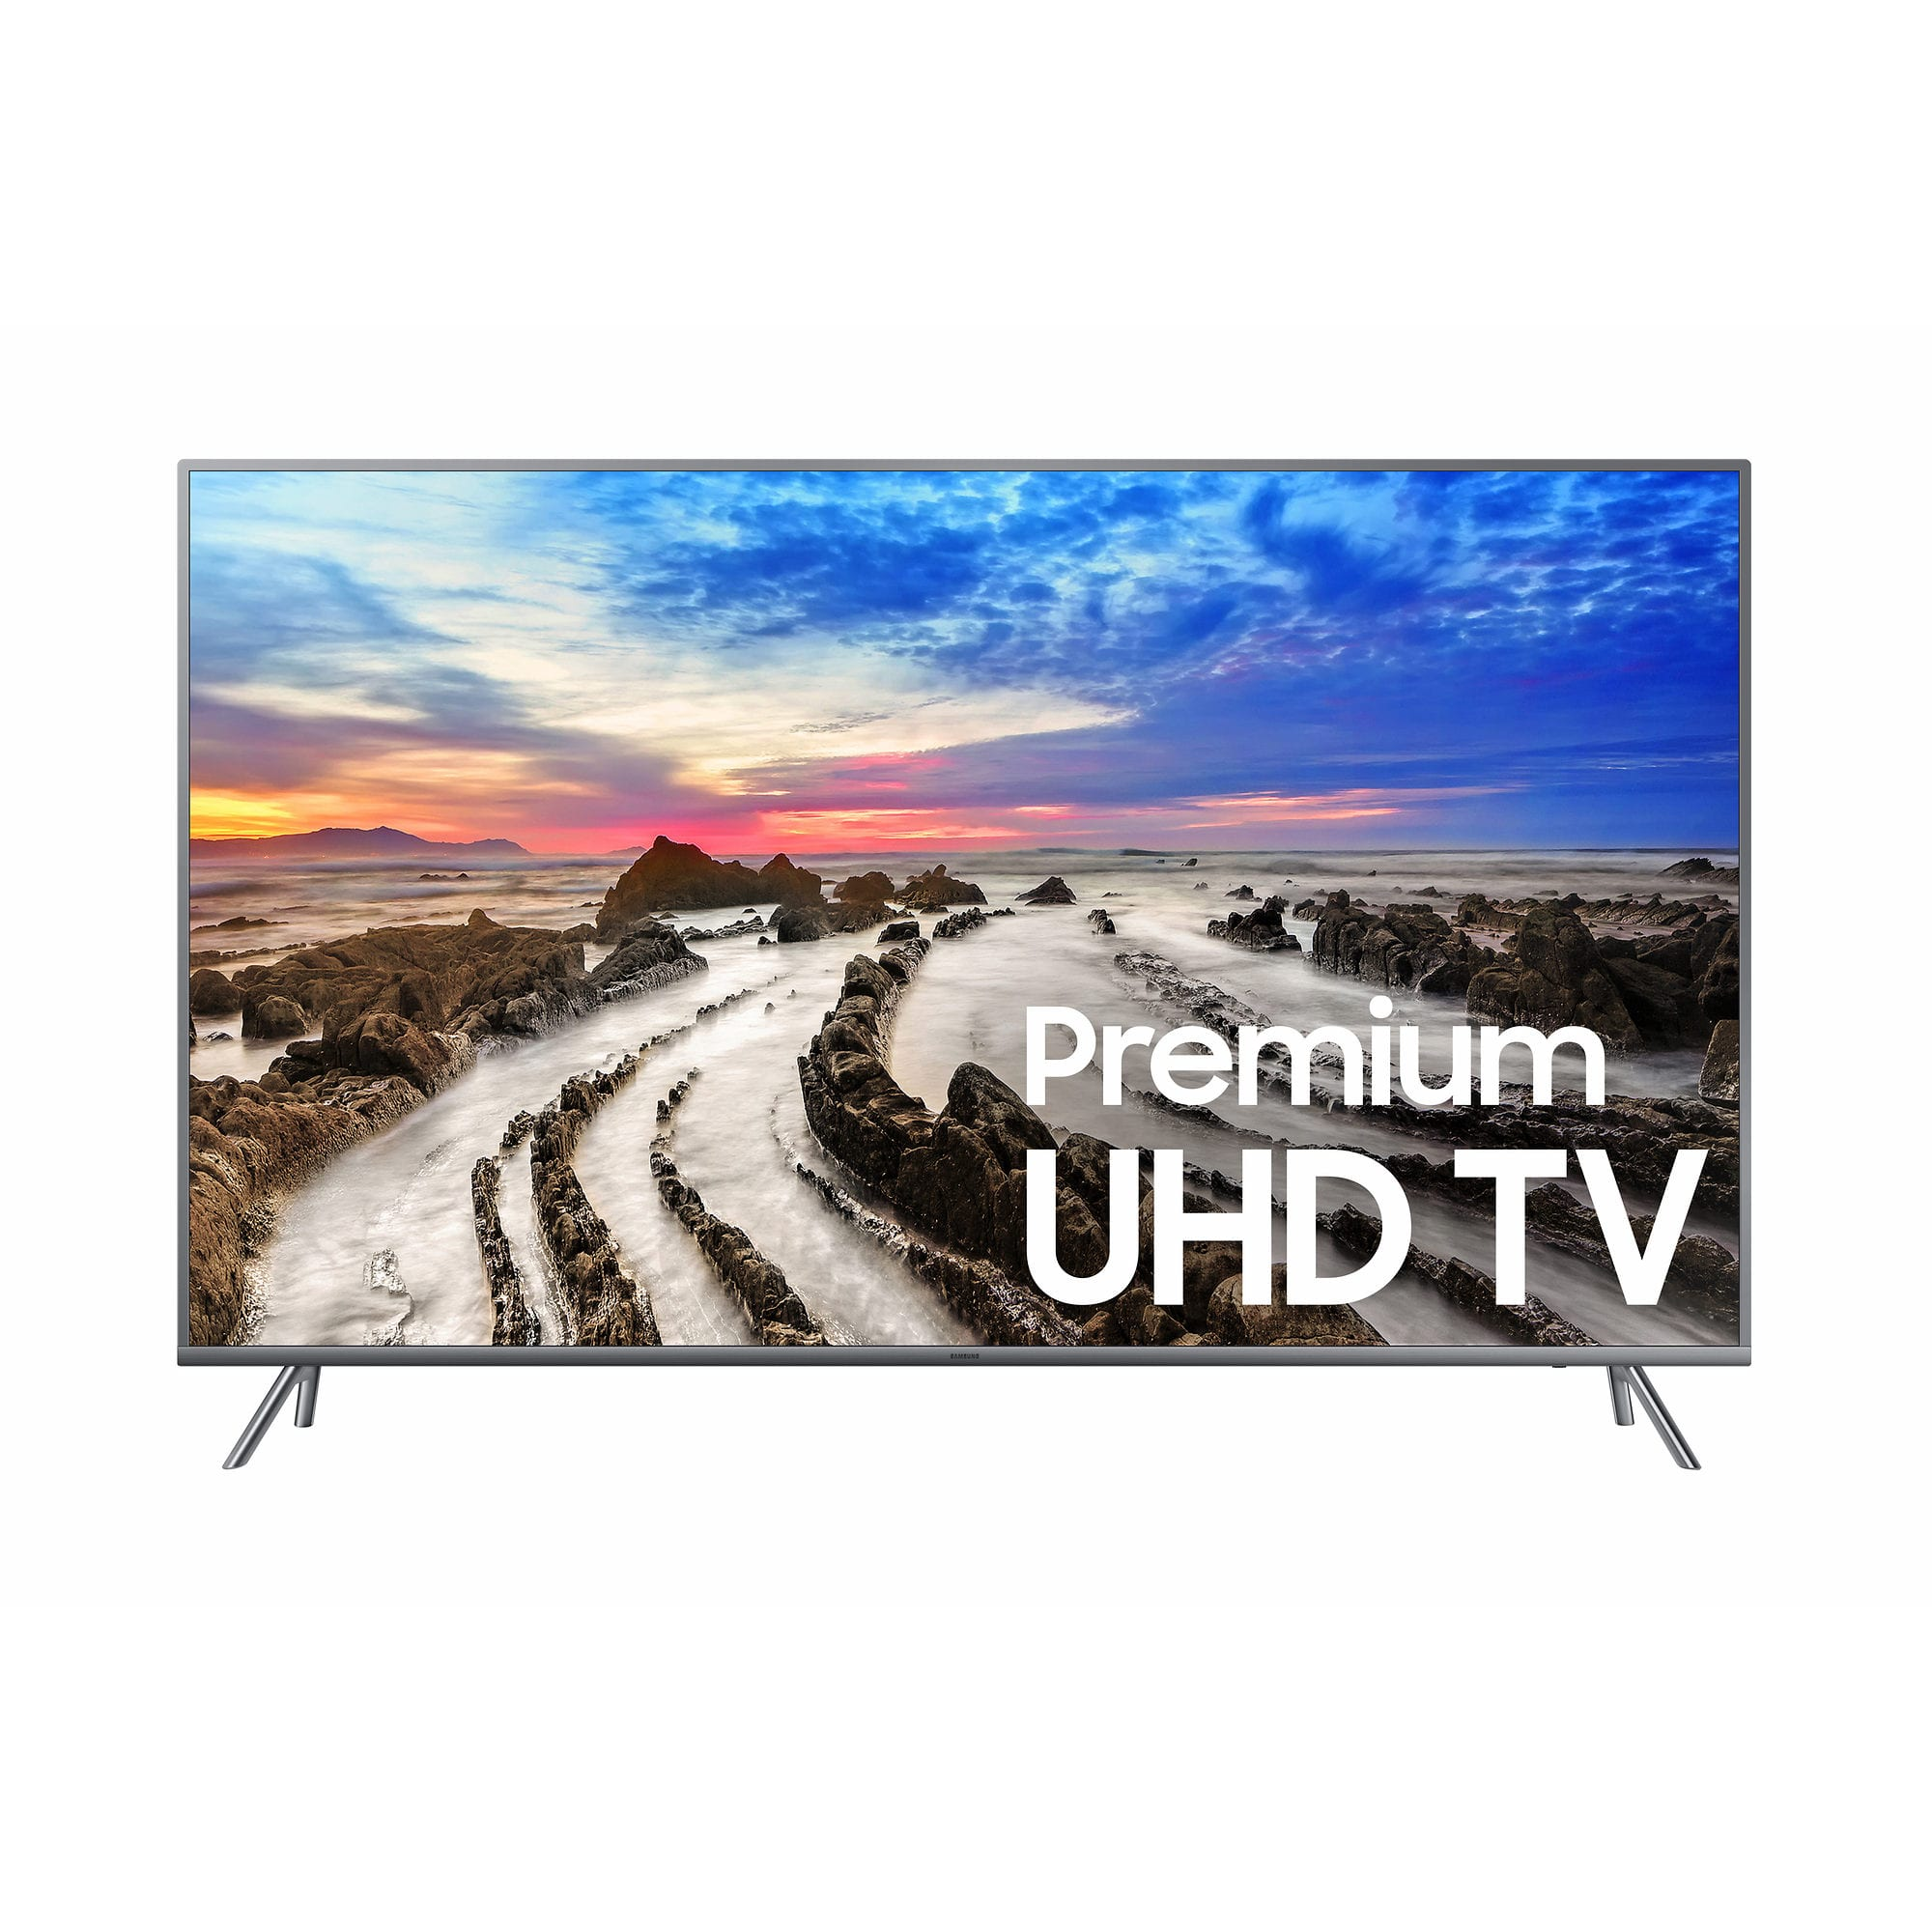 "Samsung UN55MU800D 55"" Premium 4K UHD HDR Smart LED TV with $100 Google Play Credit $679.99"